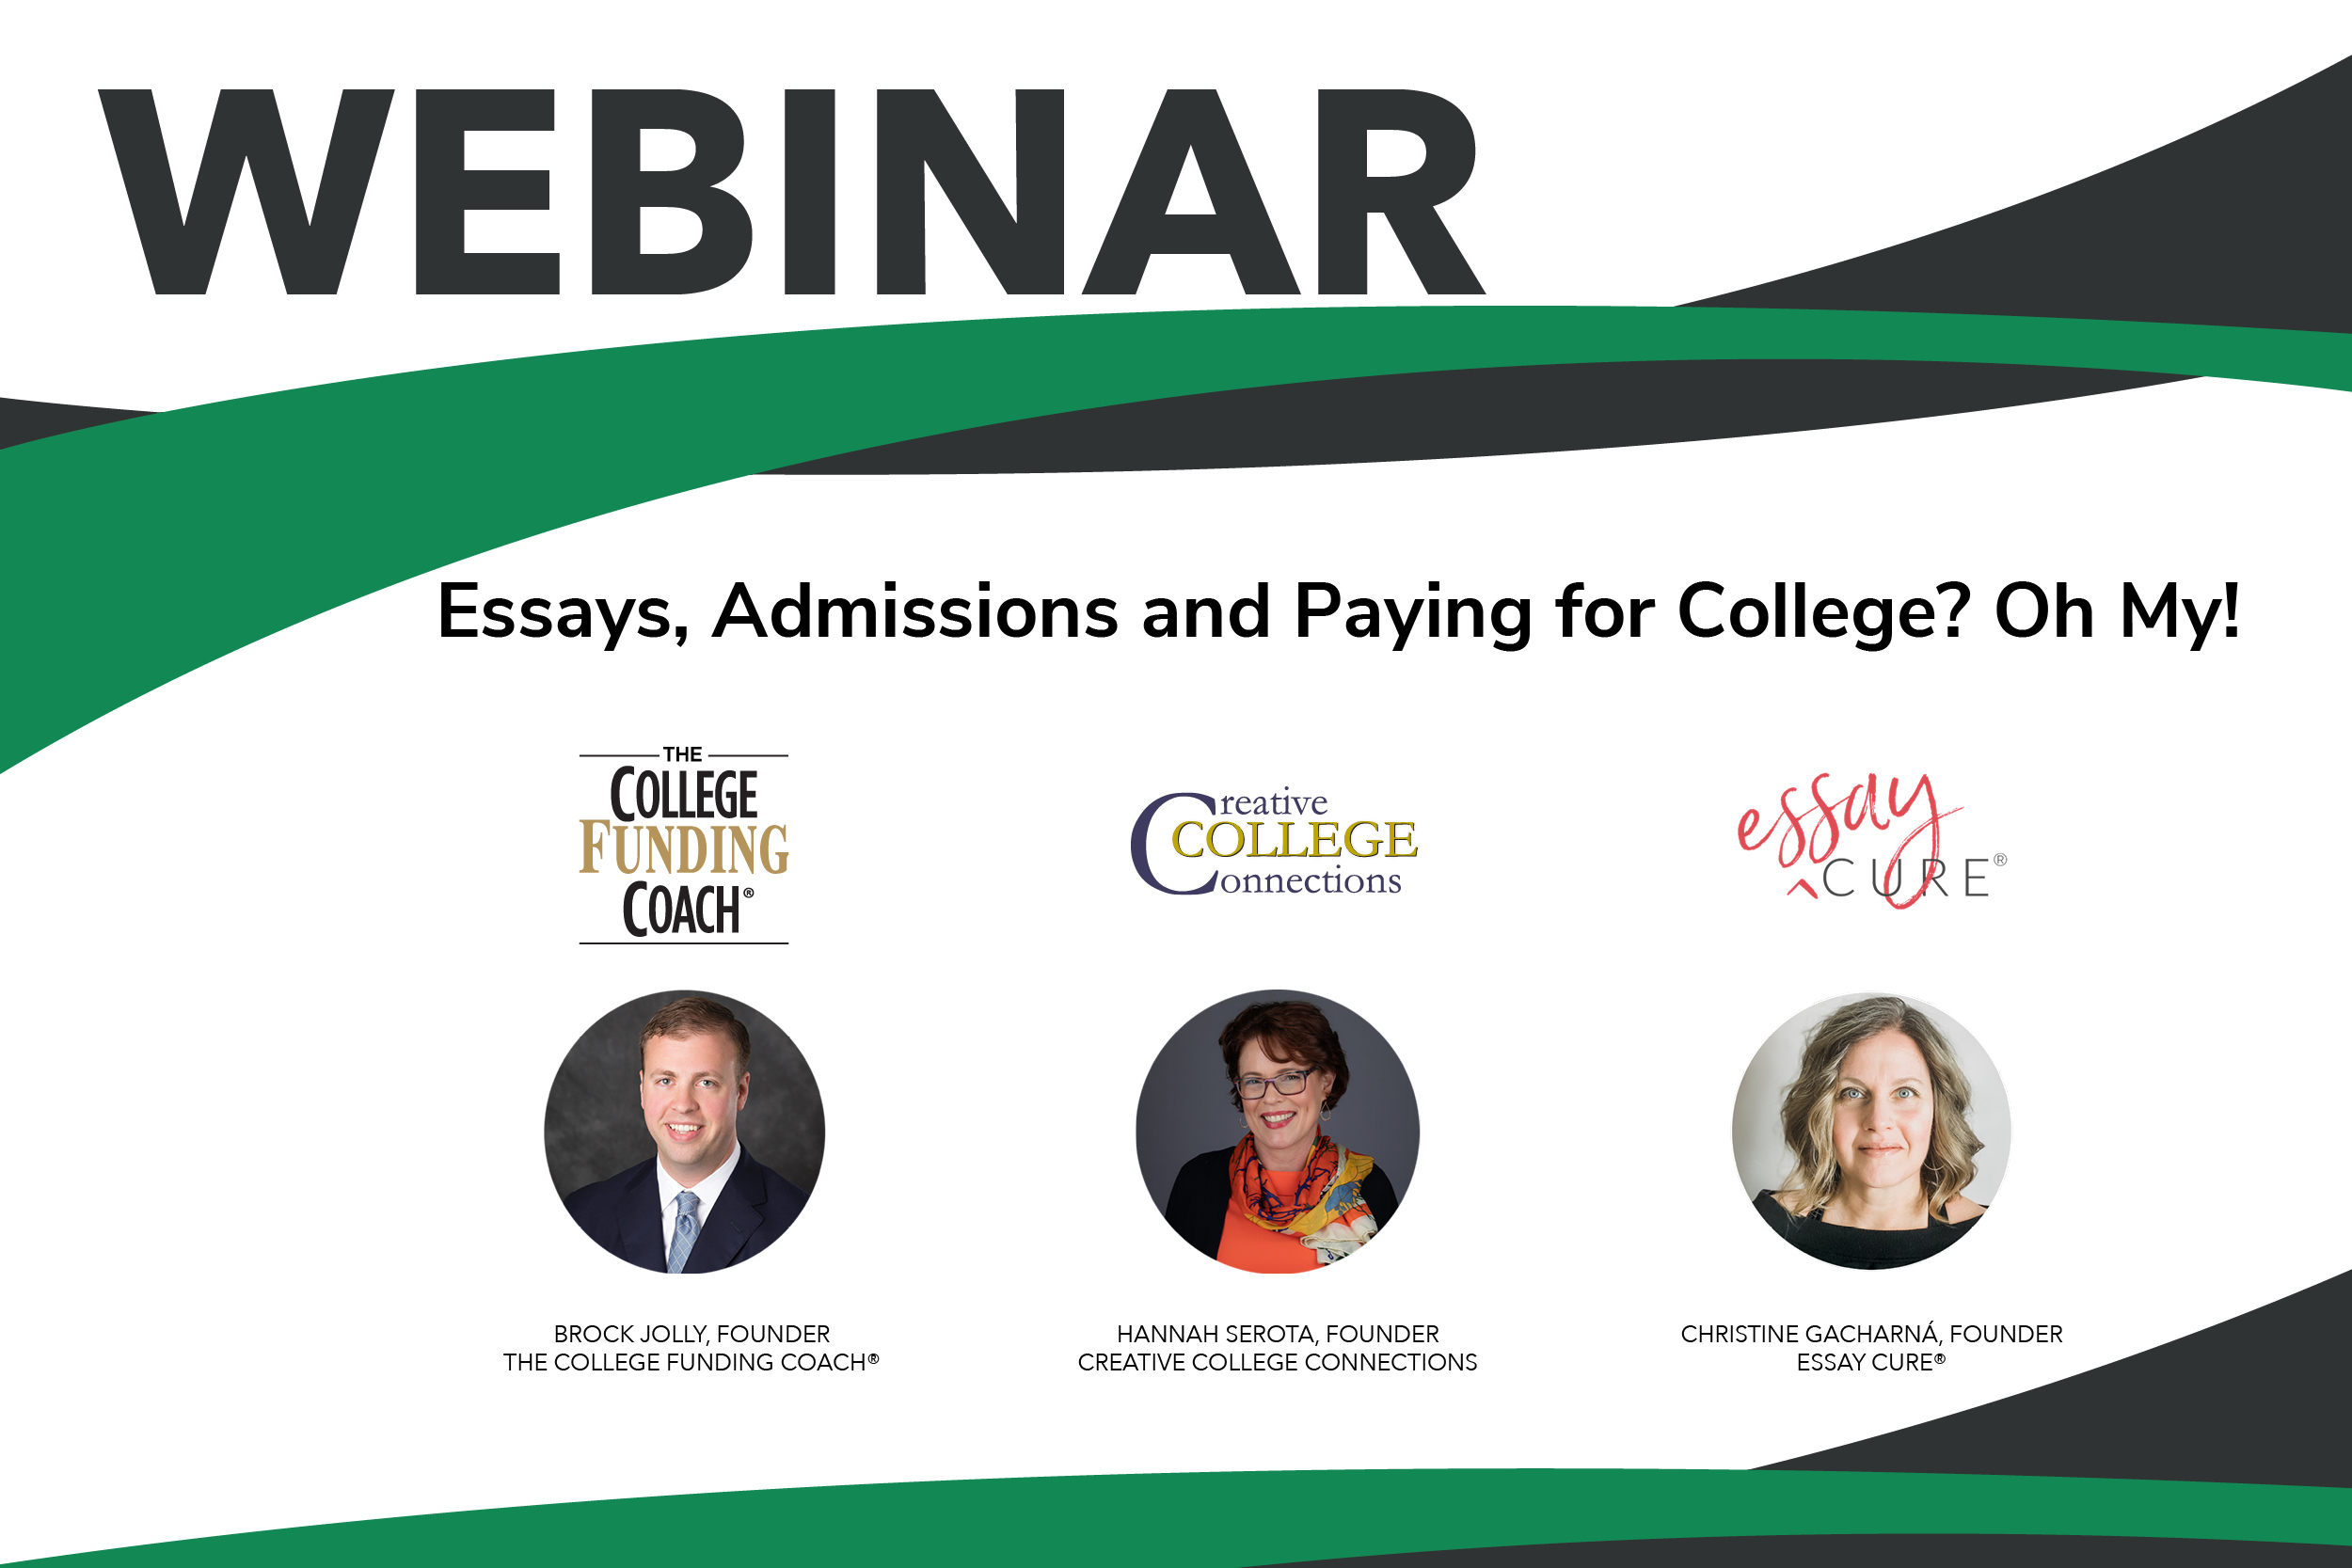 V2 Essays, Admissions And Paying For College? Oh My!